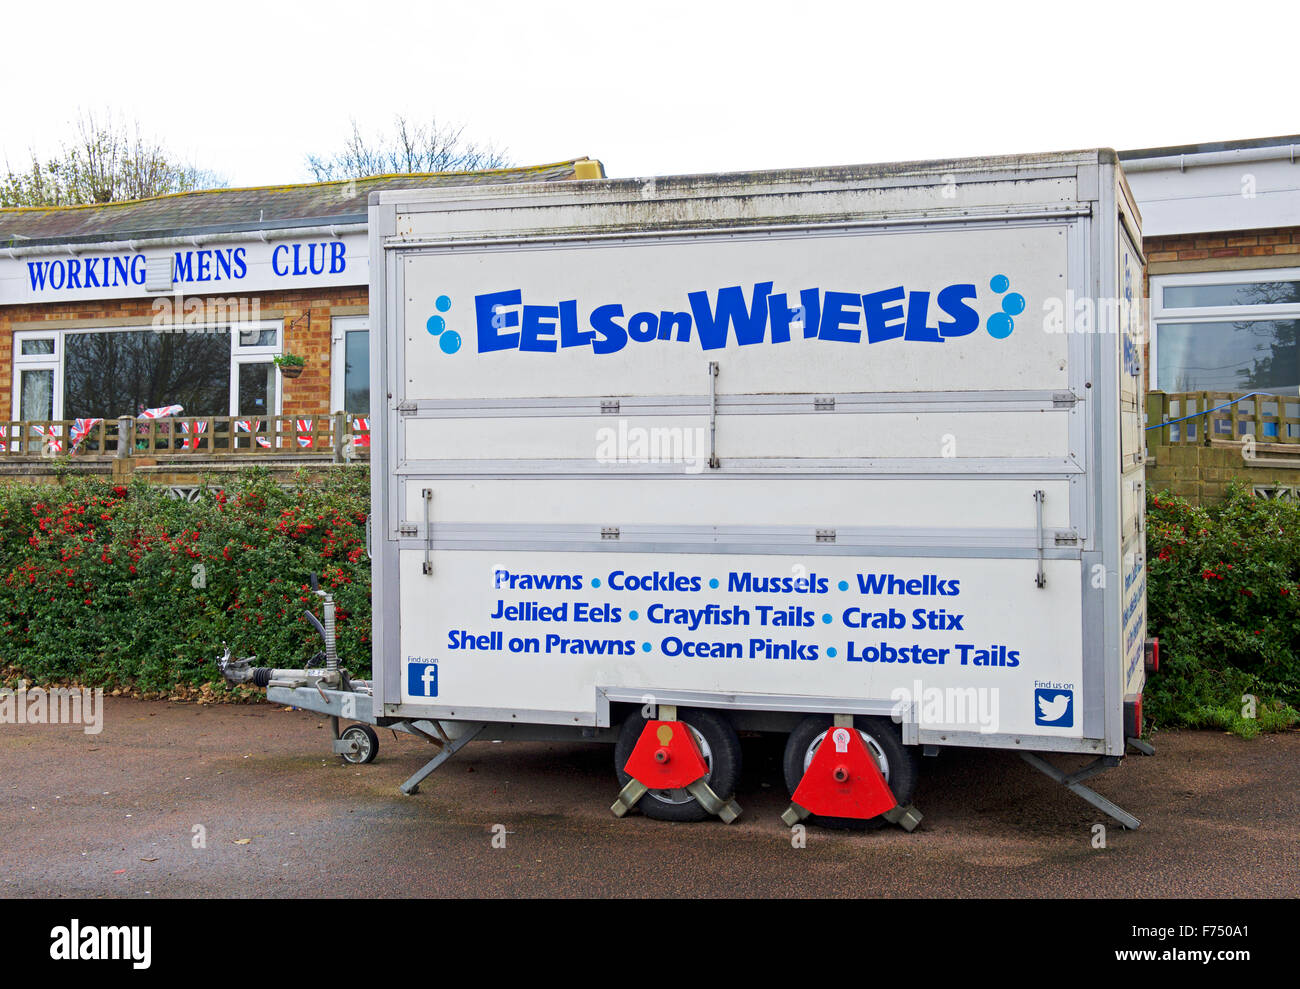 Food stall - Eels on Wheels - parked outside working mens club, Isle of Sheppey, Kent, England UK - Stock Image